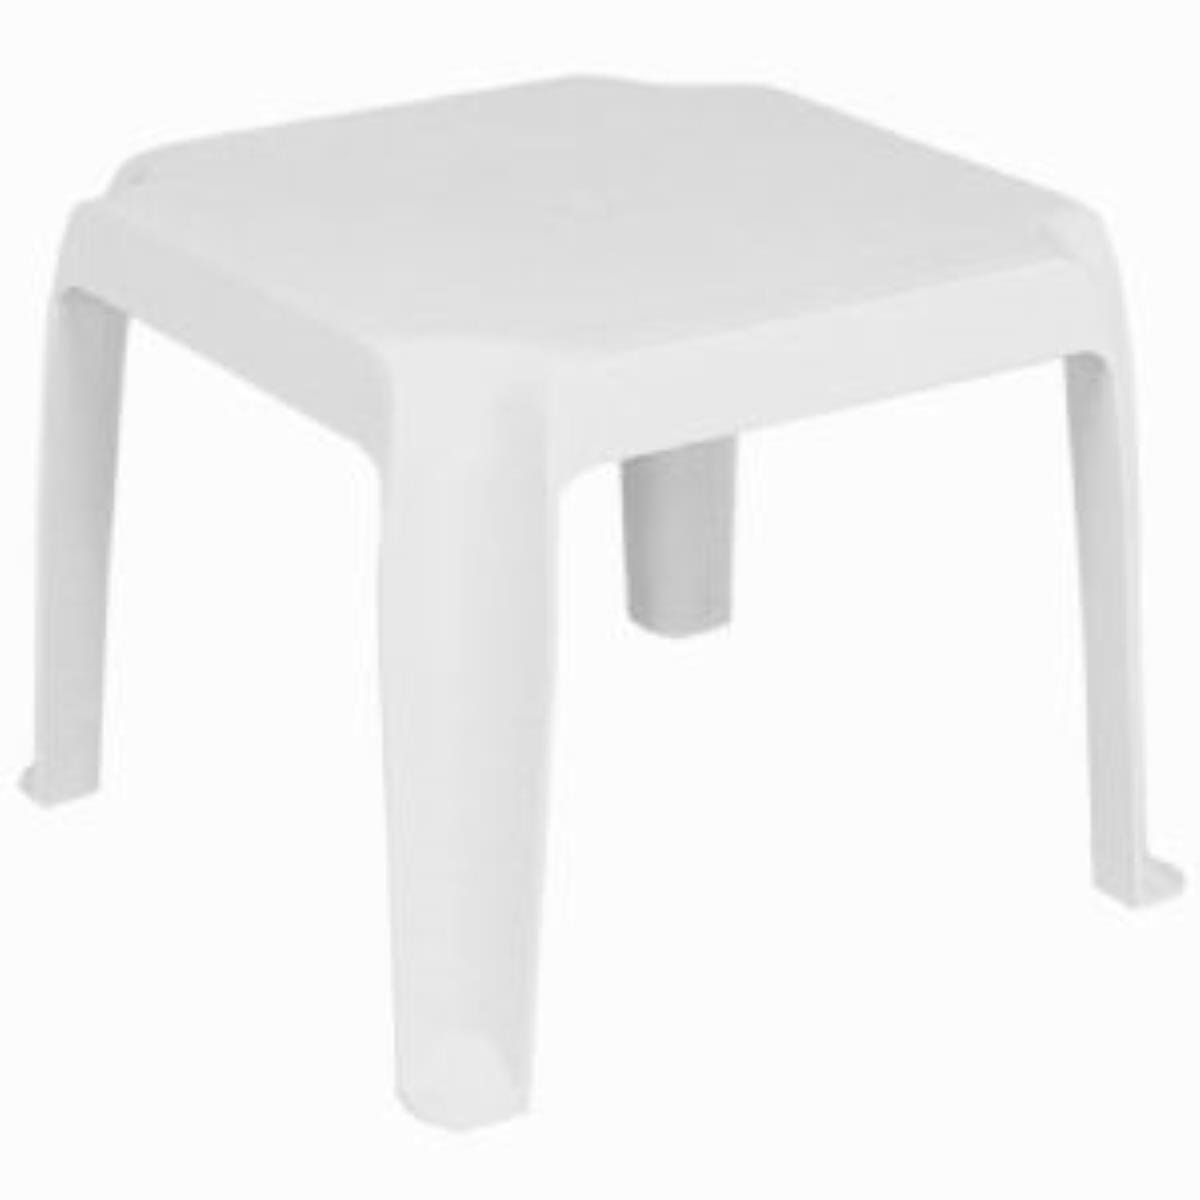 Nice Amazon.com : Sunray Resin Square Side Table White : Patio Side Tables :  Garden U0026 Outdoor